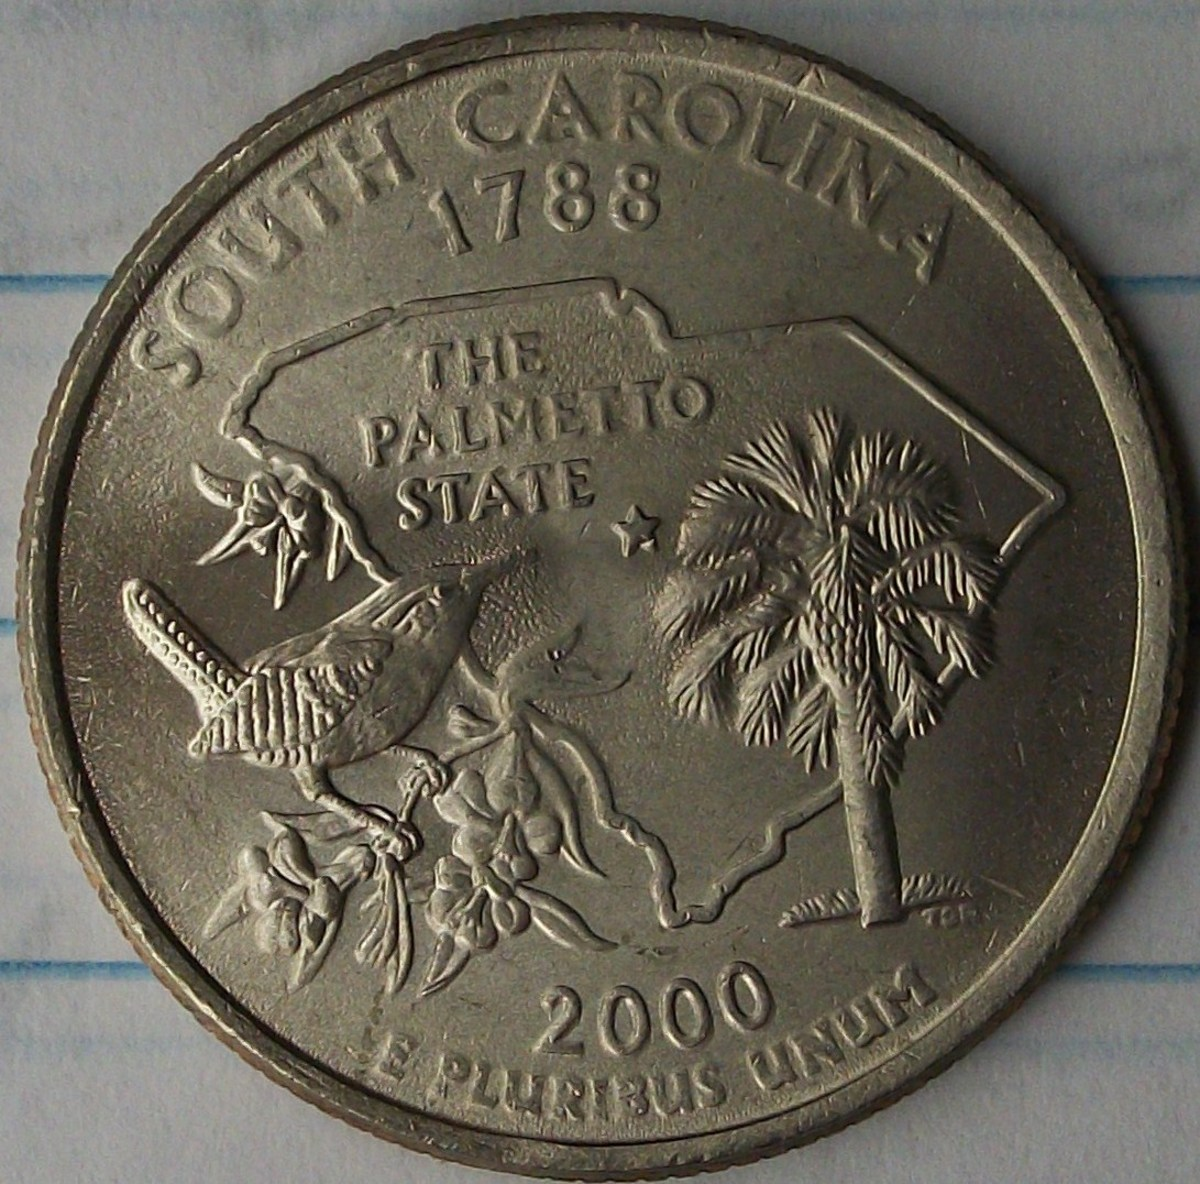 another full view of the reverse